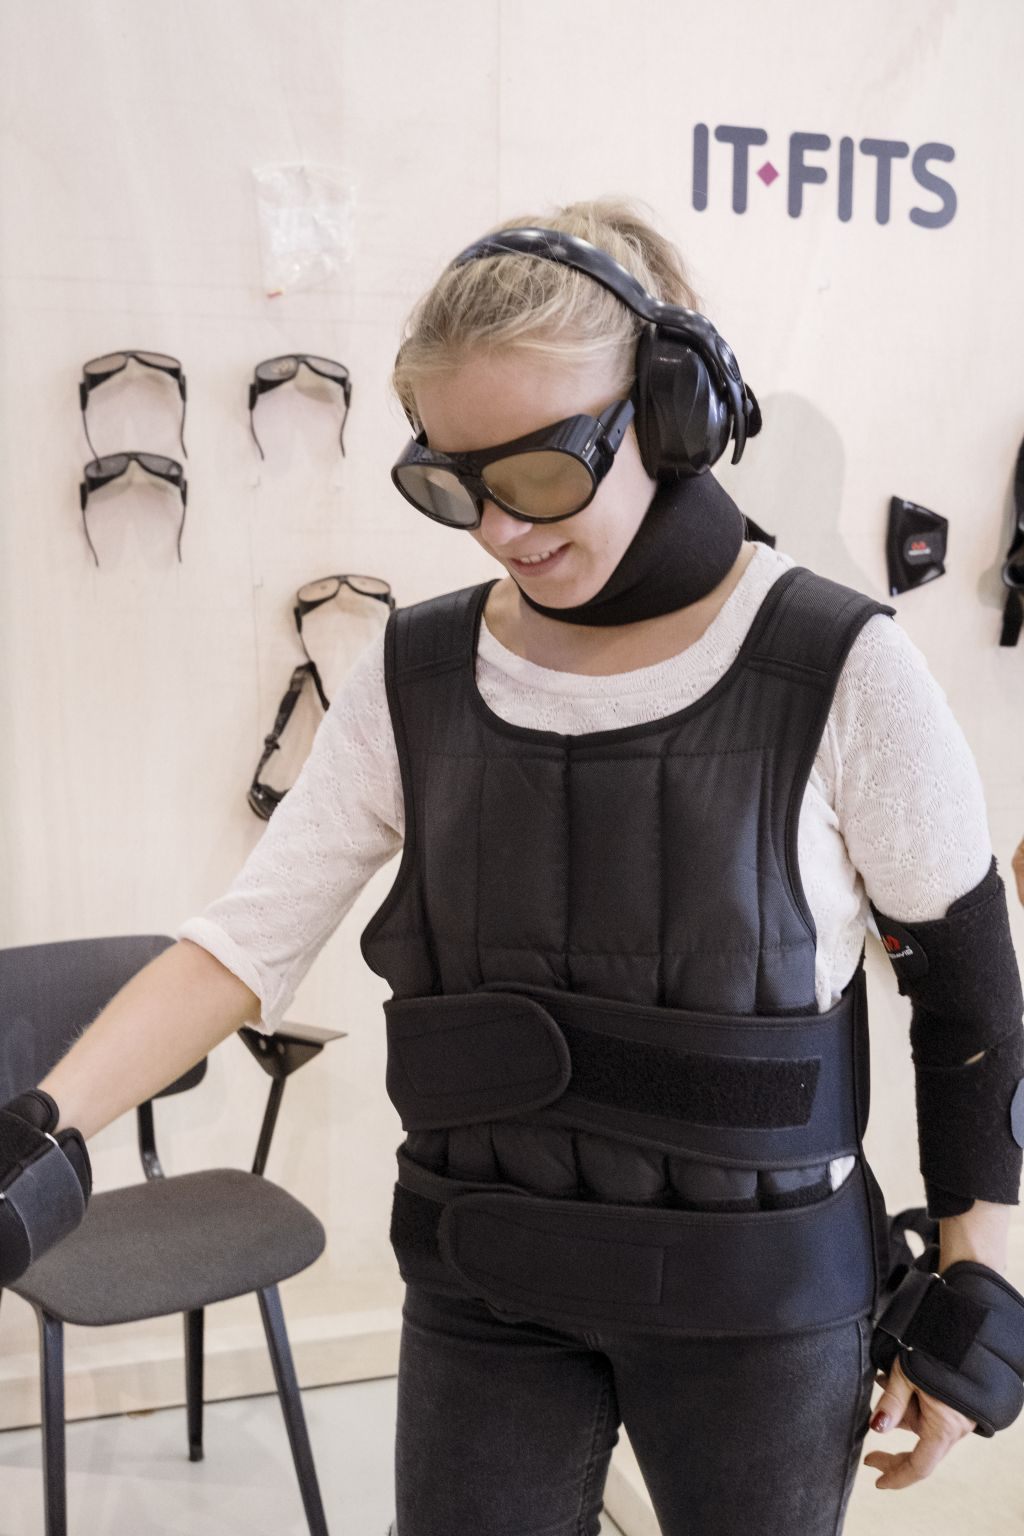 Simulation Suit: Experience what it is like to age, photo Johannes Schwartz